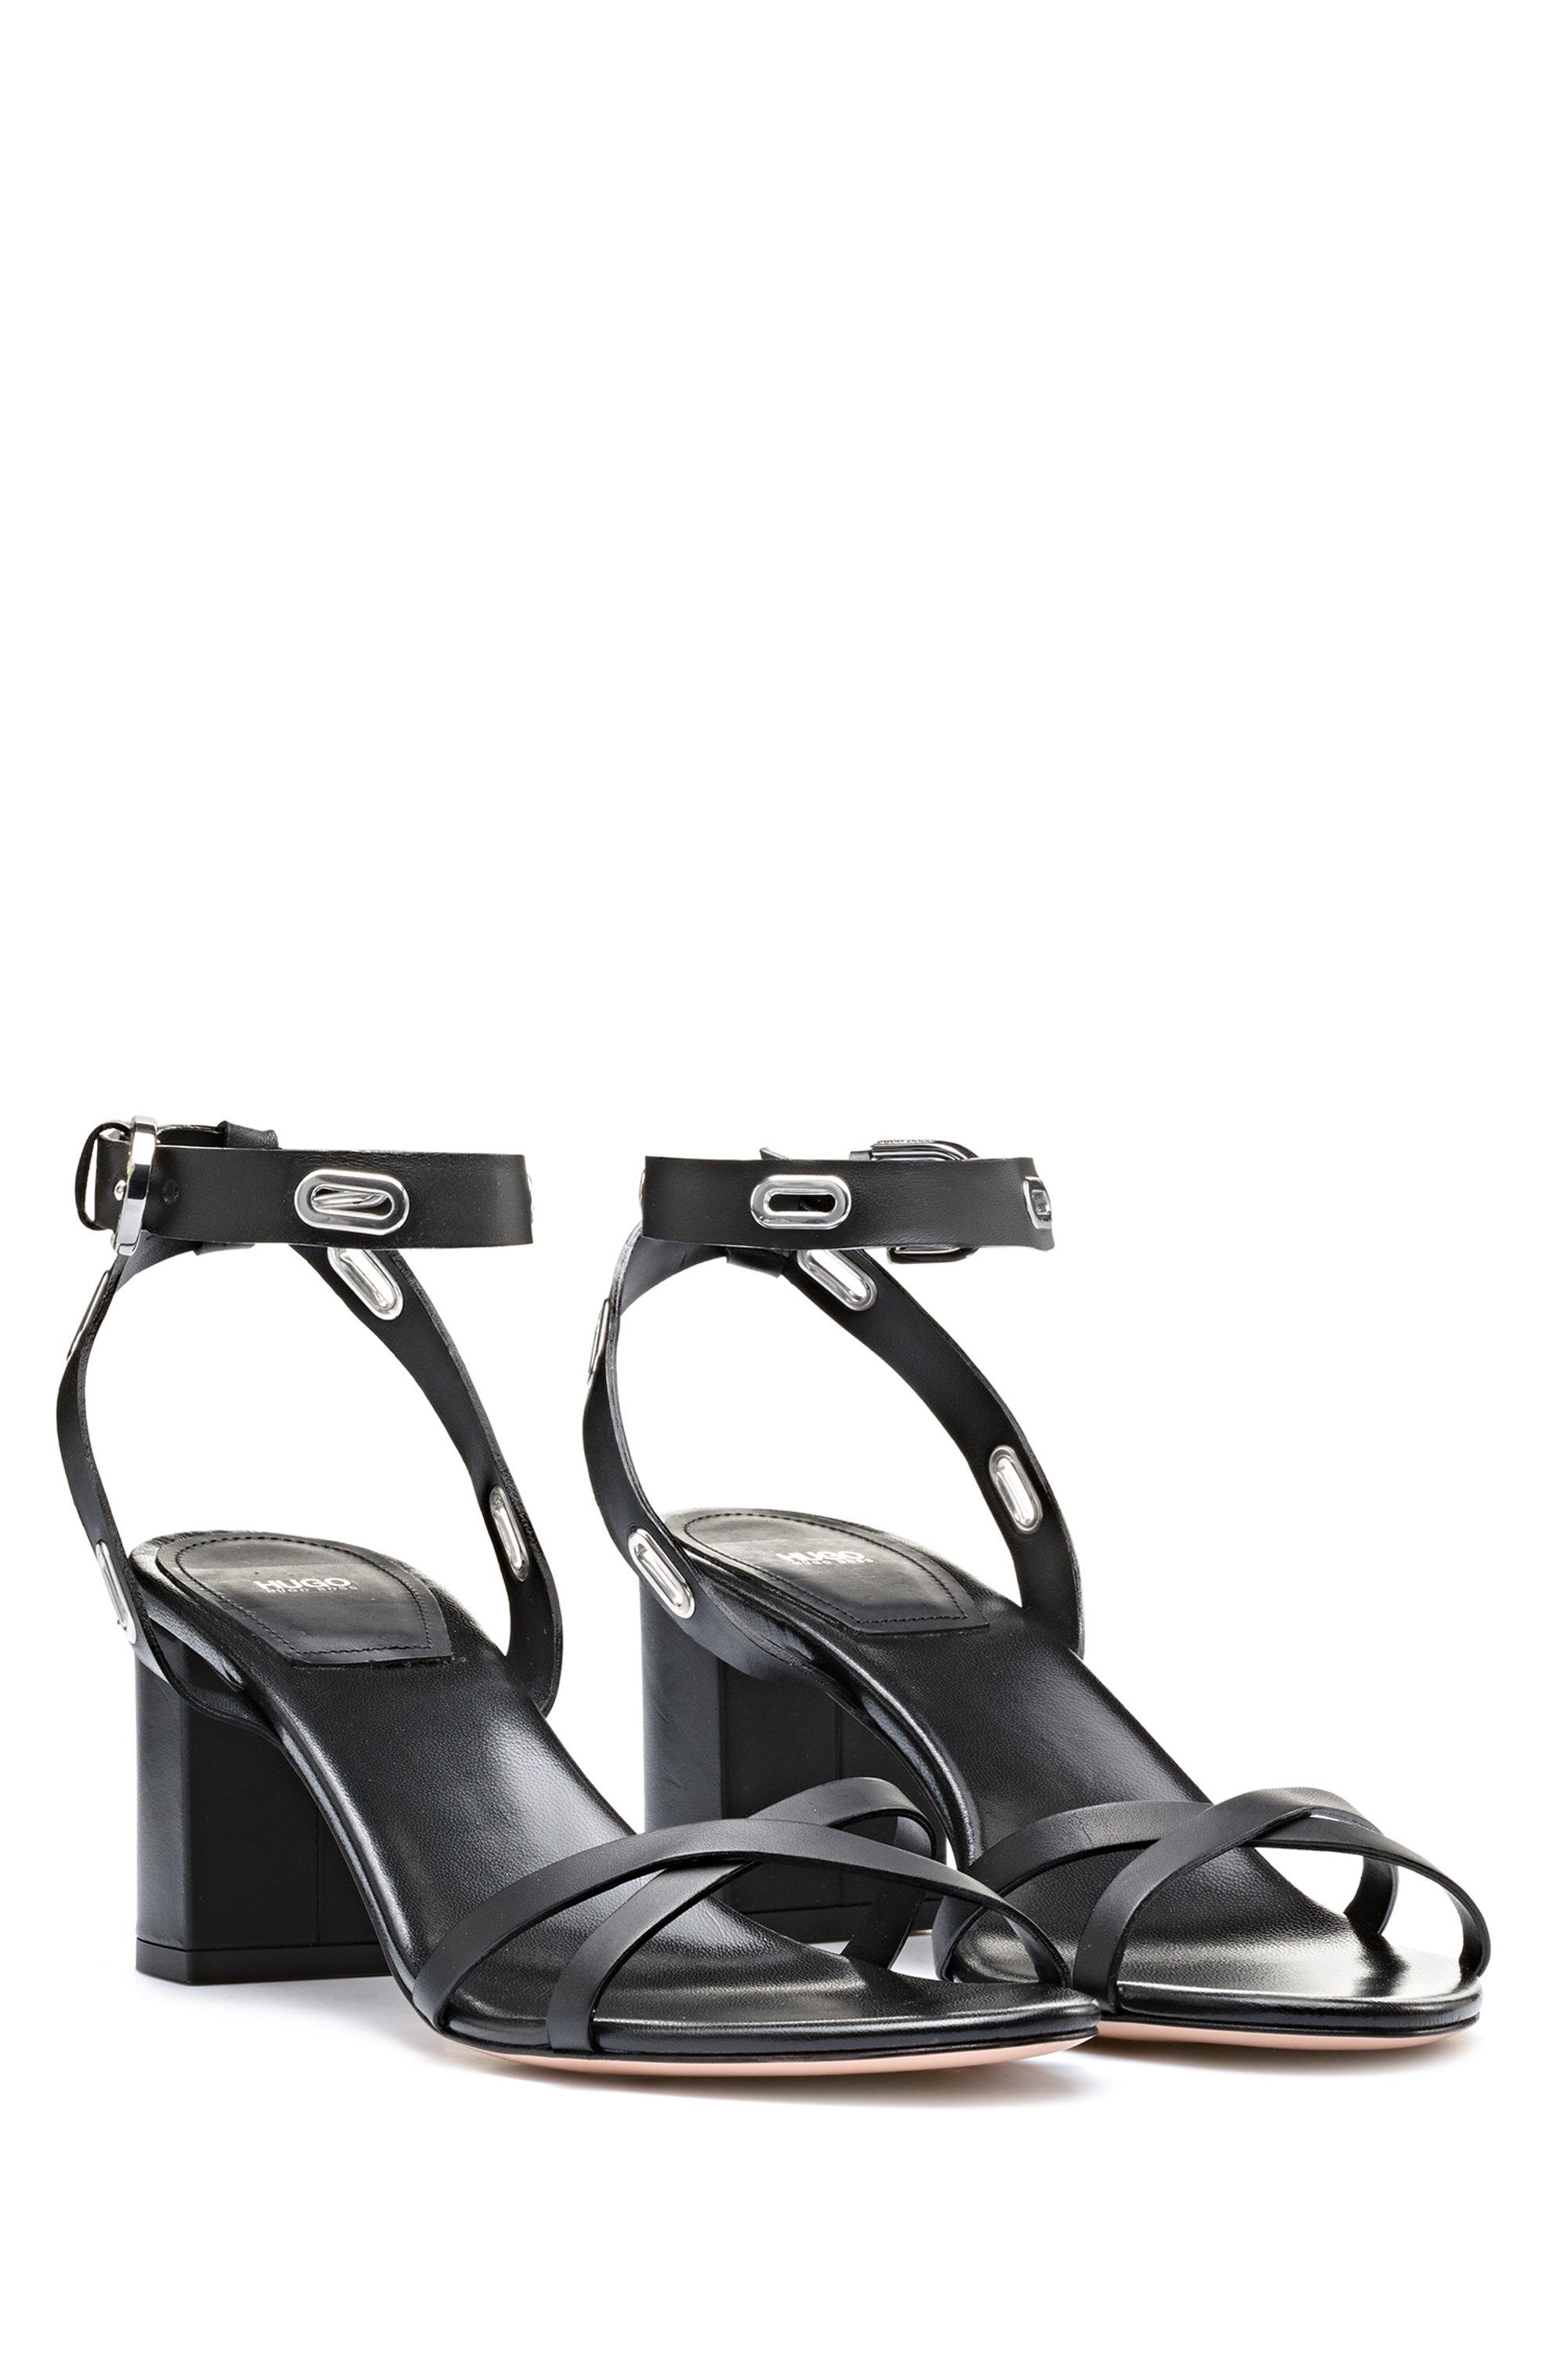 Heeled sandals in Italian leather trimmed with oval hardware